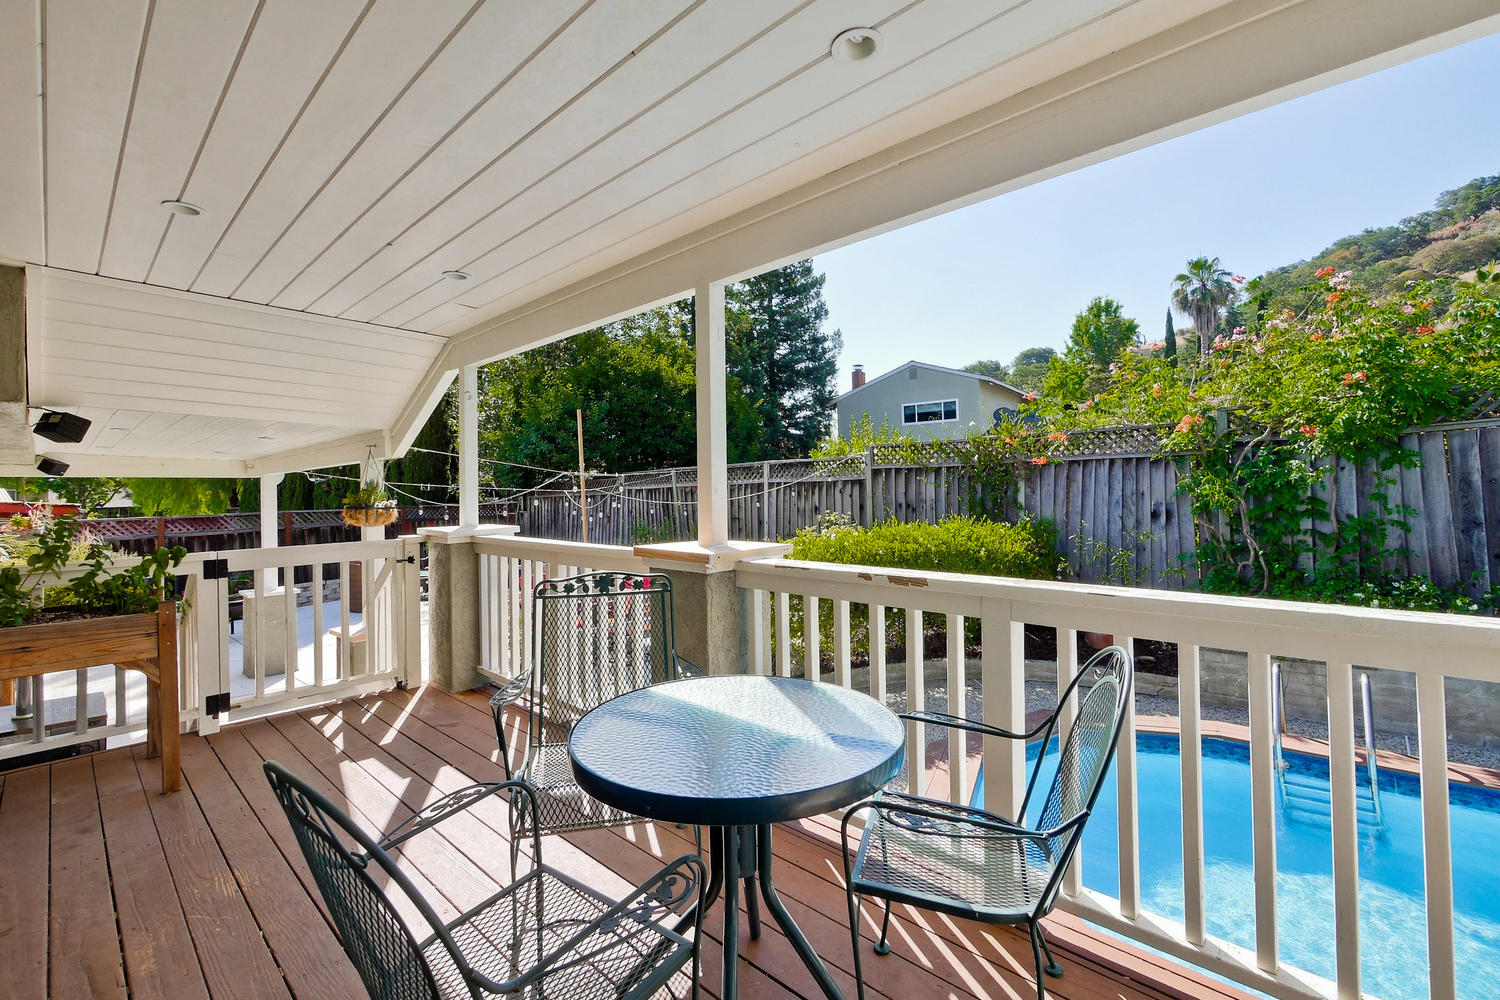 820 Colleen Dr San Jose CA-large-075-26-Deck off Kitchen Overlooking-1500x1000-72dpi